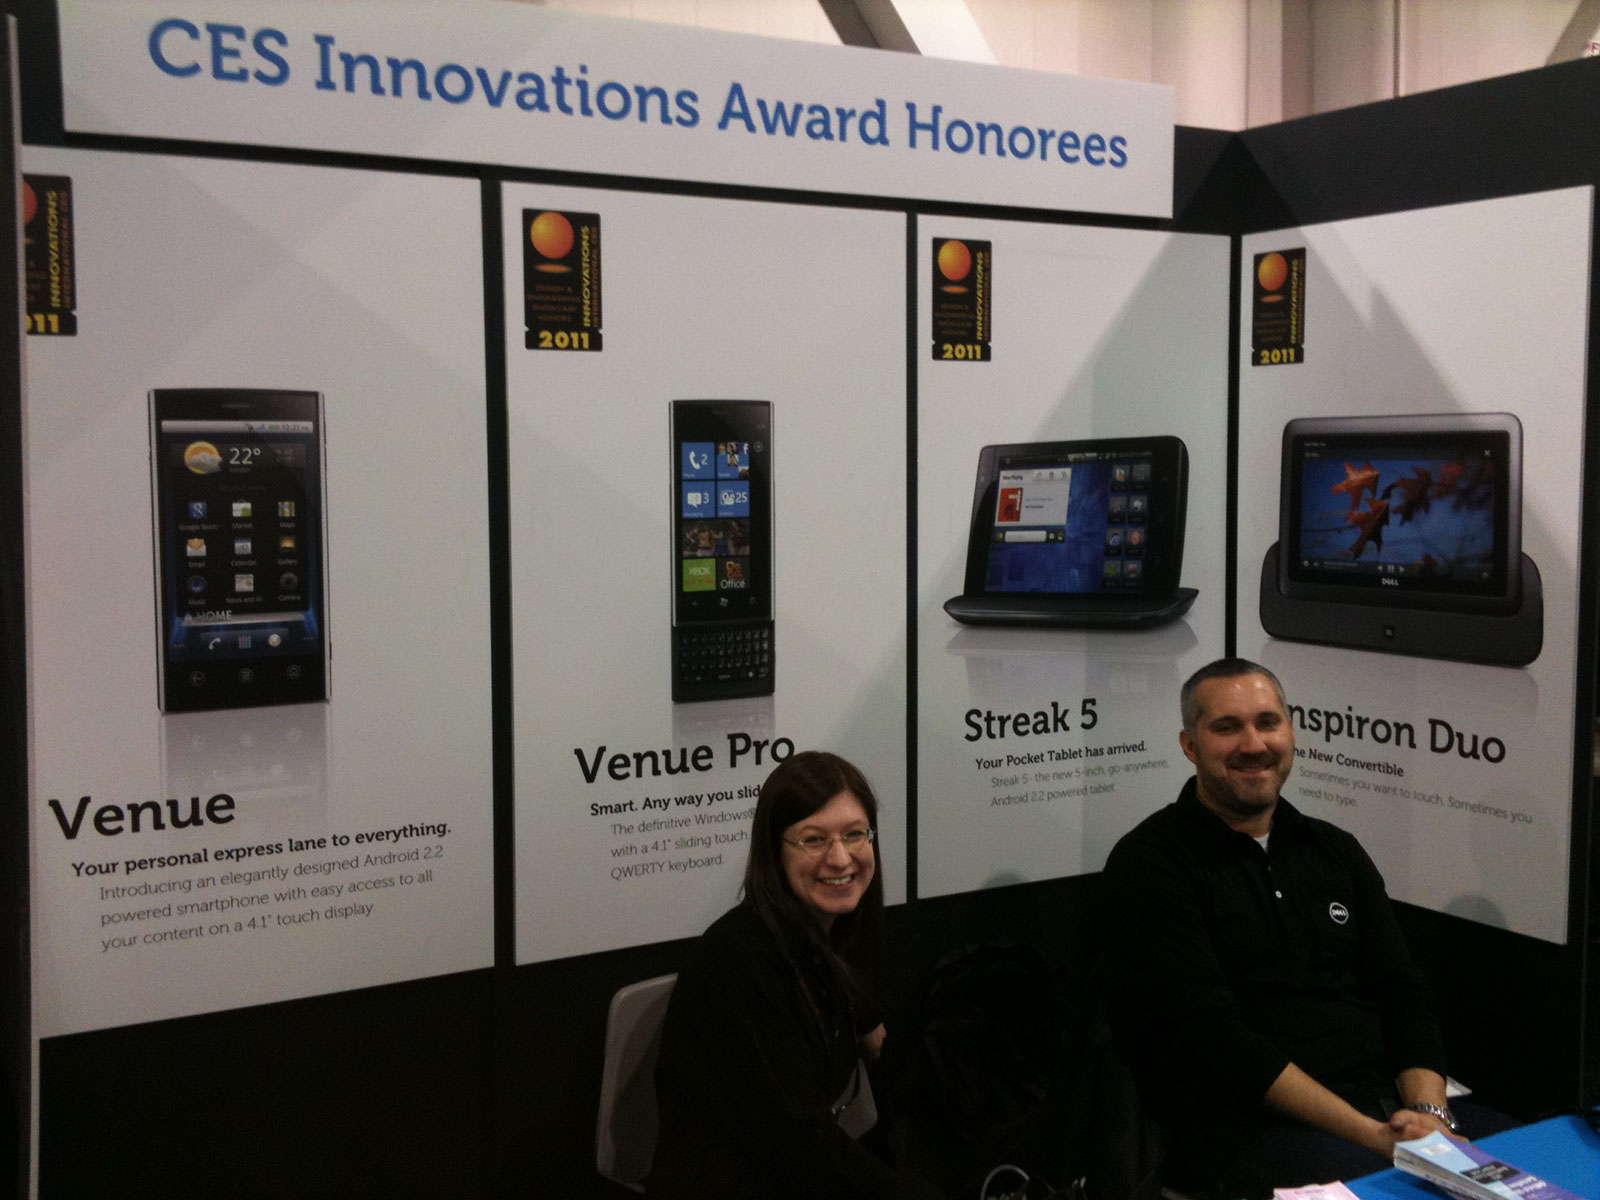 innovation winners at CES 2011